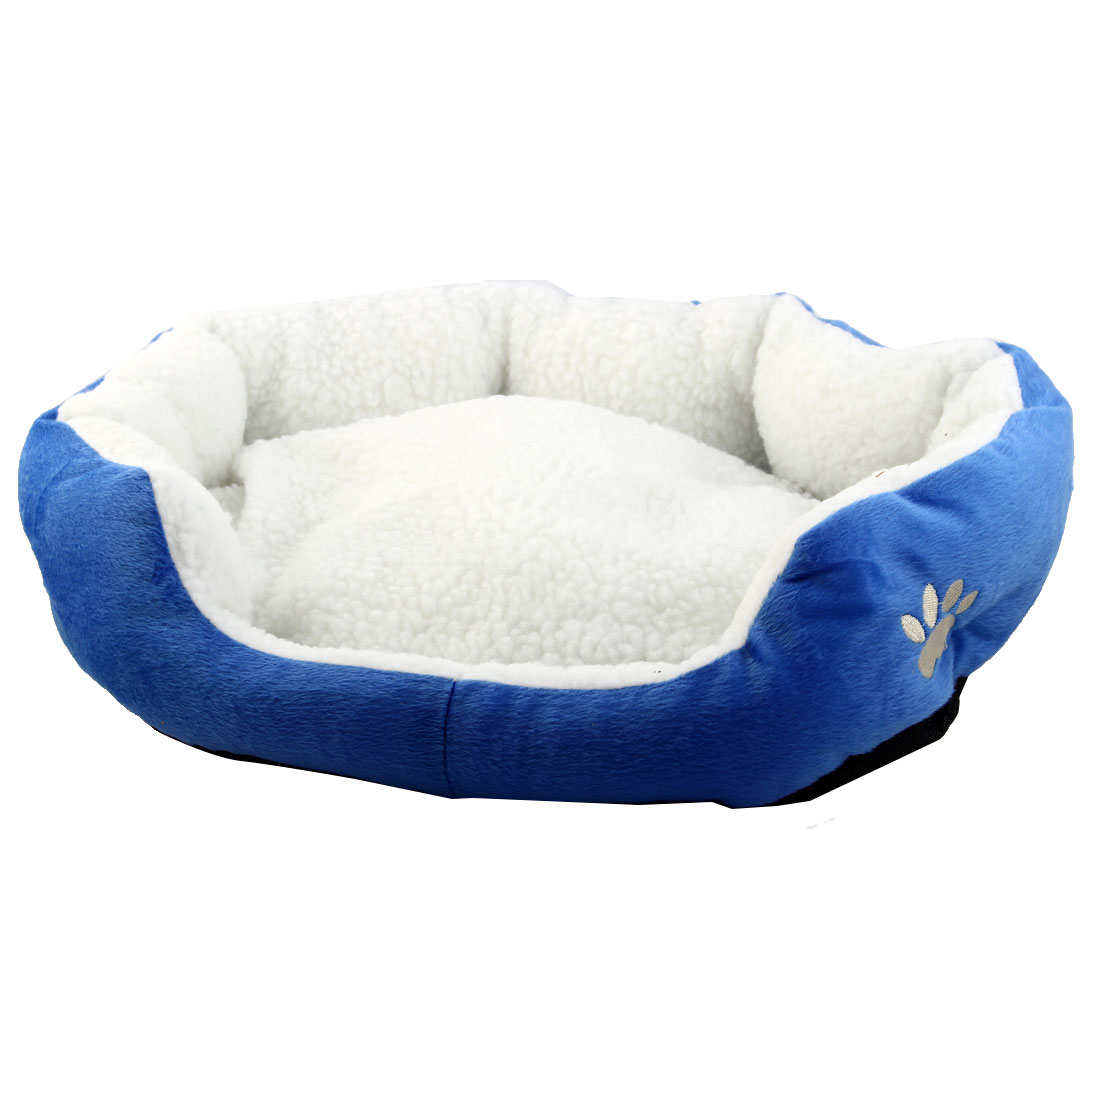 Pet Cat Plush Oval Shape Removable Cushion Nesting Dog Bed Cave Blue 50cm x 40cm